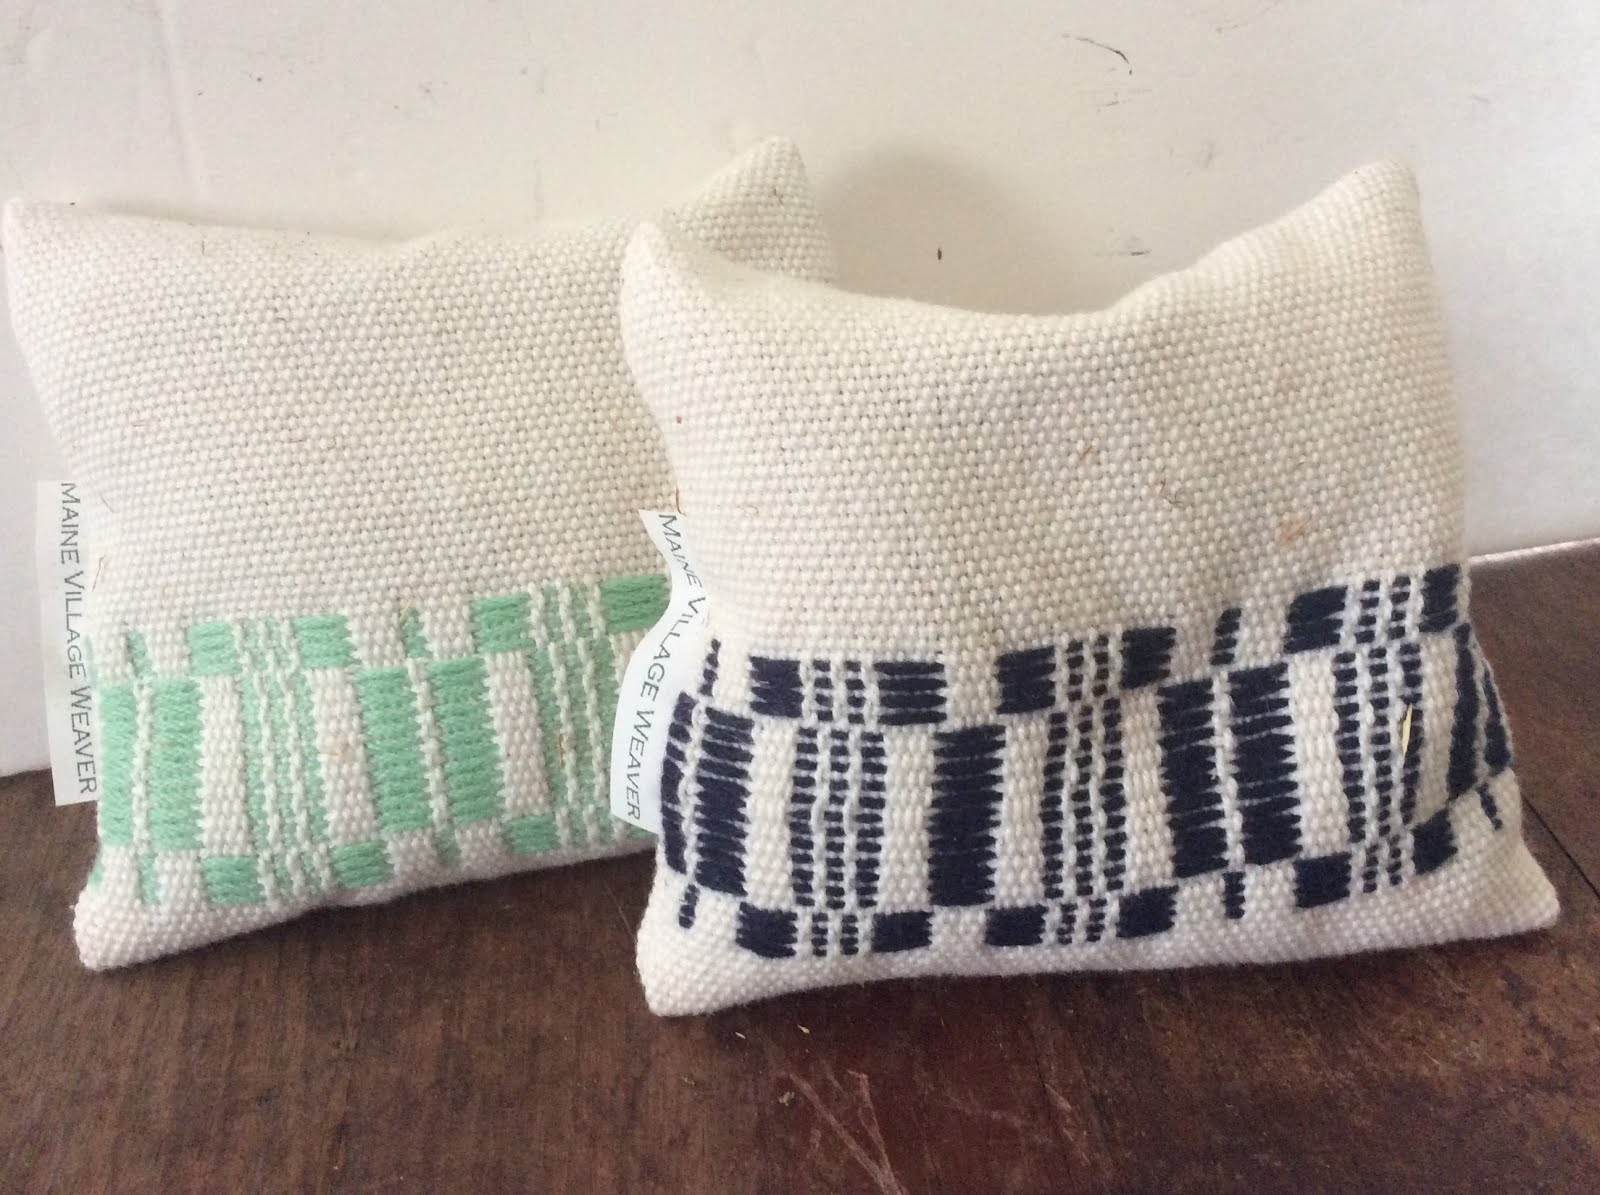 Pine Balsam  4 oz  sachet filled with Maine balsam Hand woven design on sachet 4 x 4